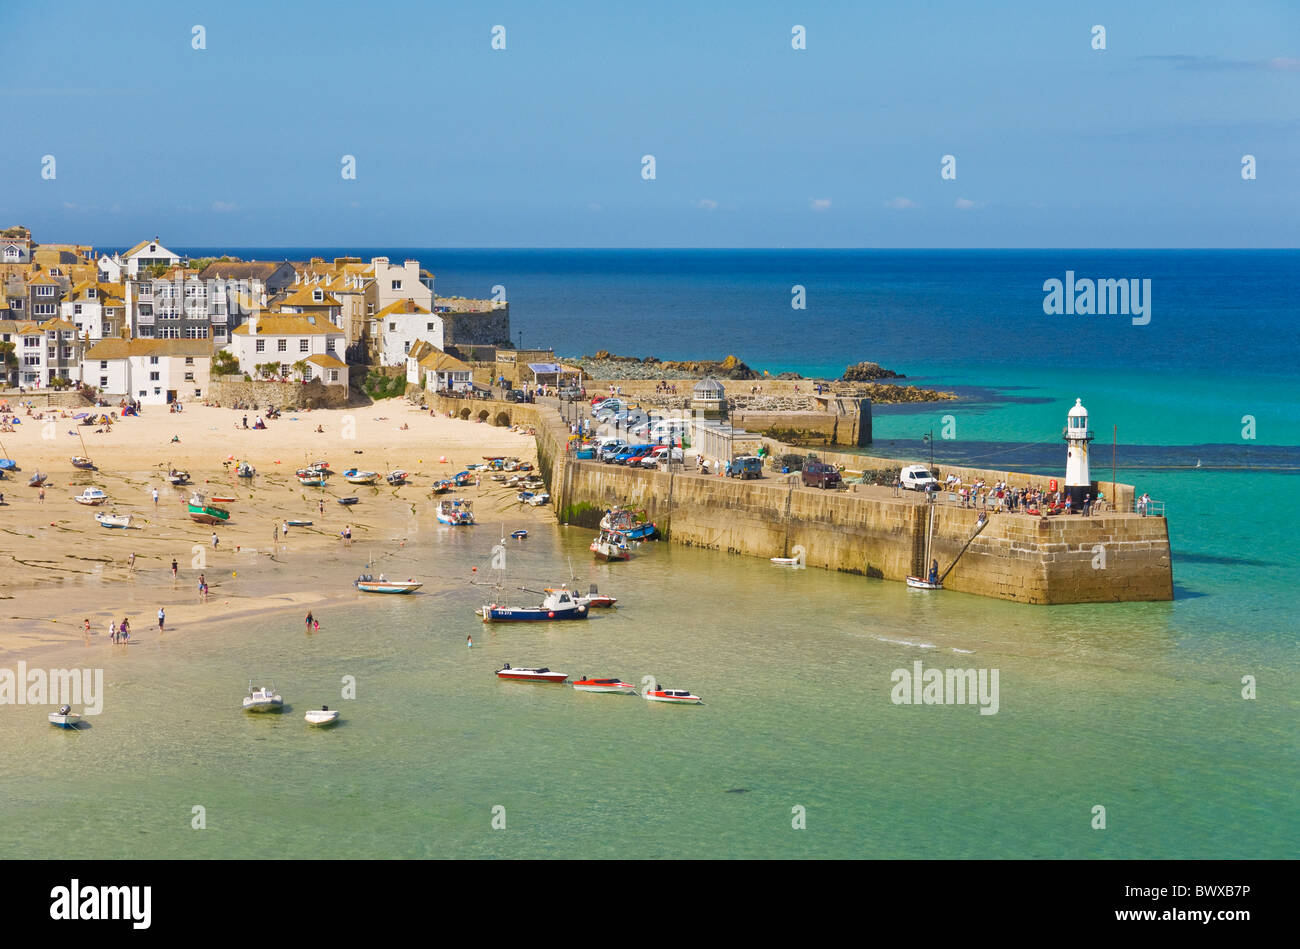 The Island or St Ives Head St Ives Cornwall England GB UK EU Europe - Stock Image